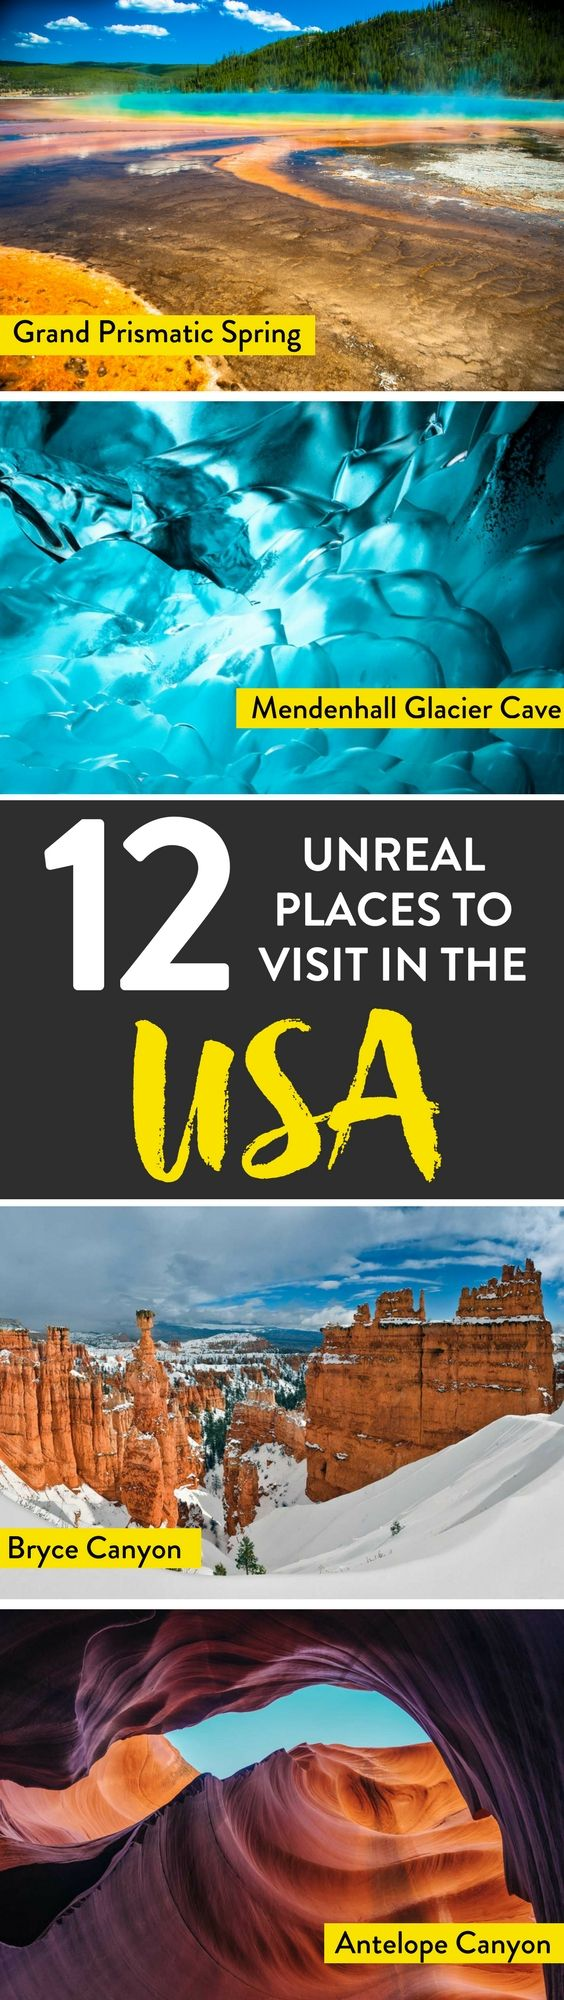 Best Travel Usa Ideas On Pinterest Road Trip Destinations - 12 amazing caves you have to visit